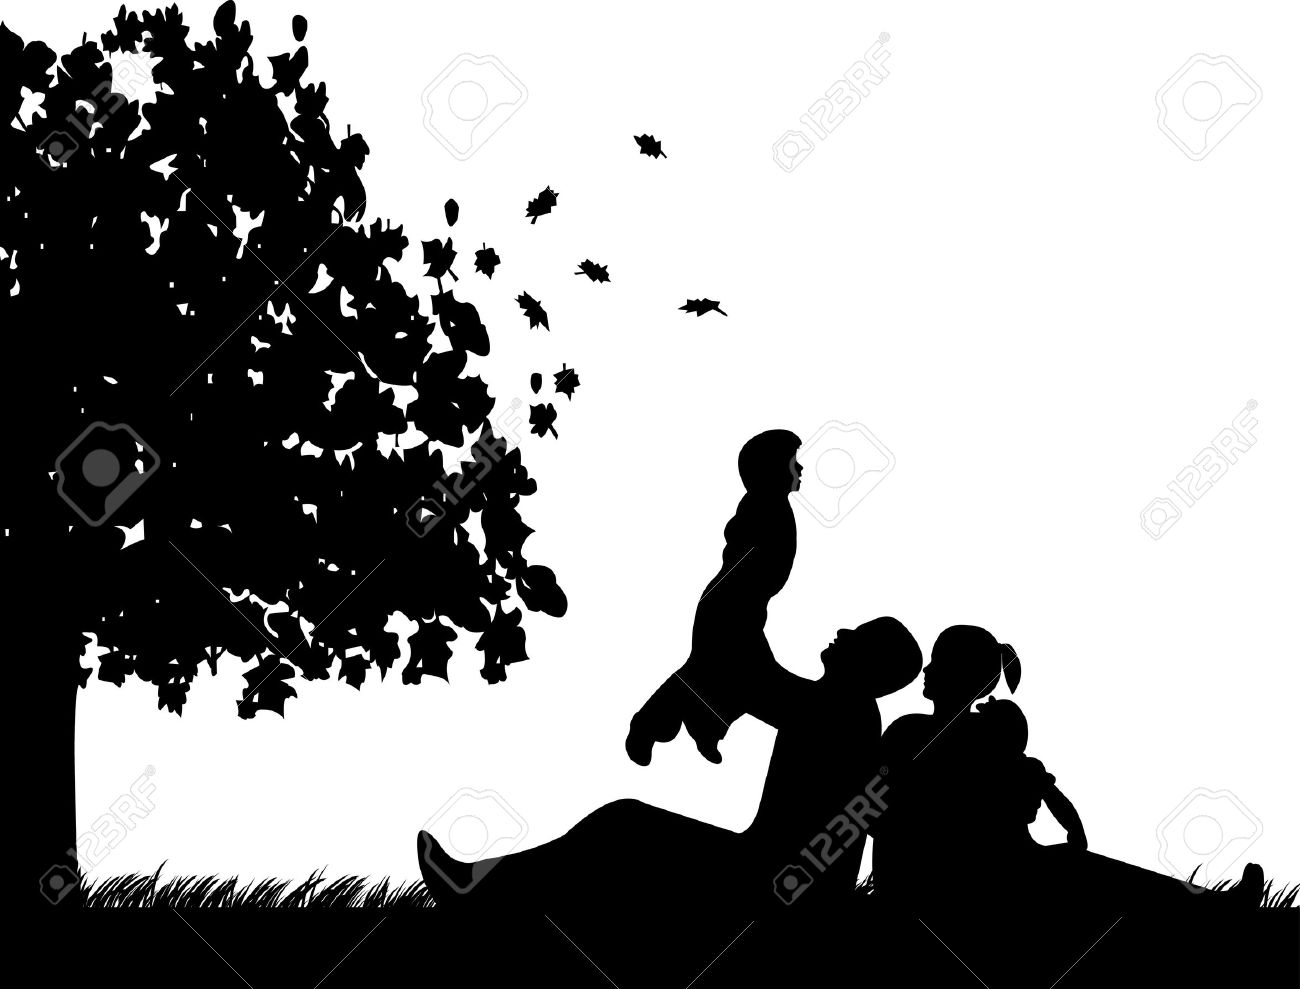 Family picnic in park in autumn or fall under the tree silhouette Stock Vector - 14800053